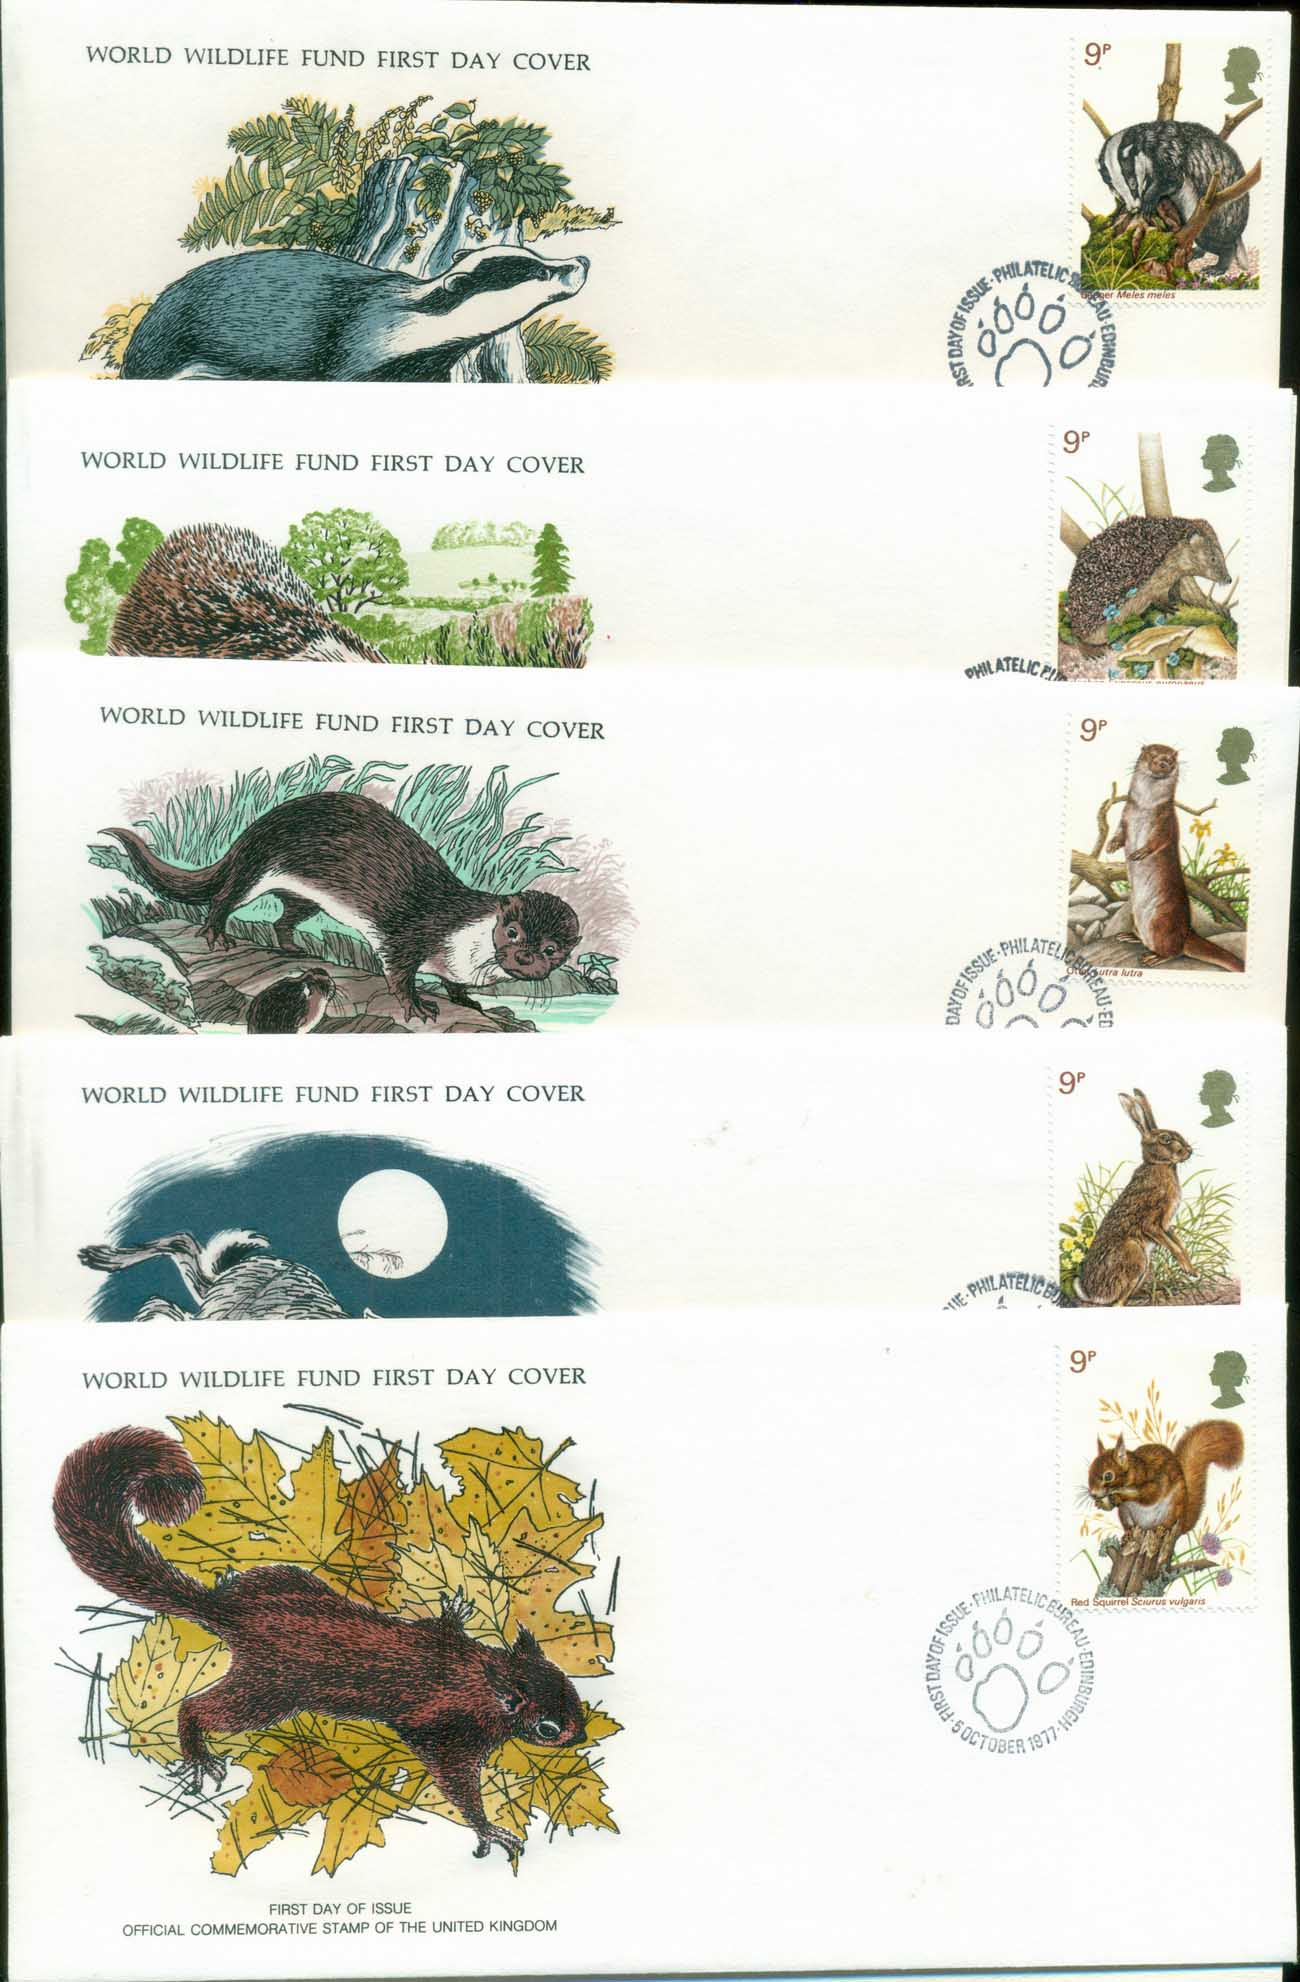 GB 1977 WWF,Badger, Hedgehog, Otter, Rabbit, Squirrel,Franlkin Mint (with inserts) 5xFDC lot79616